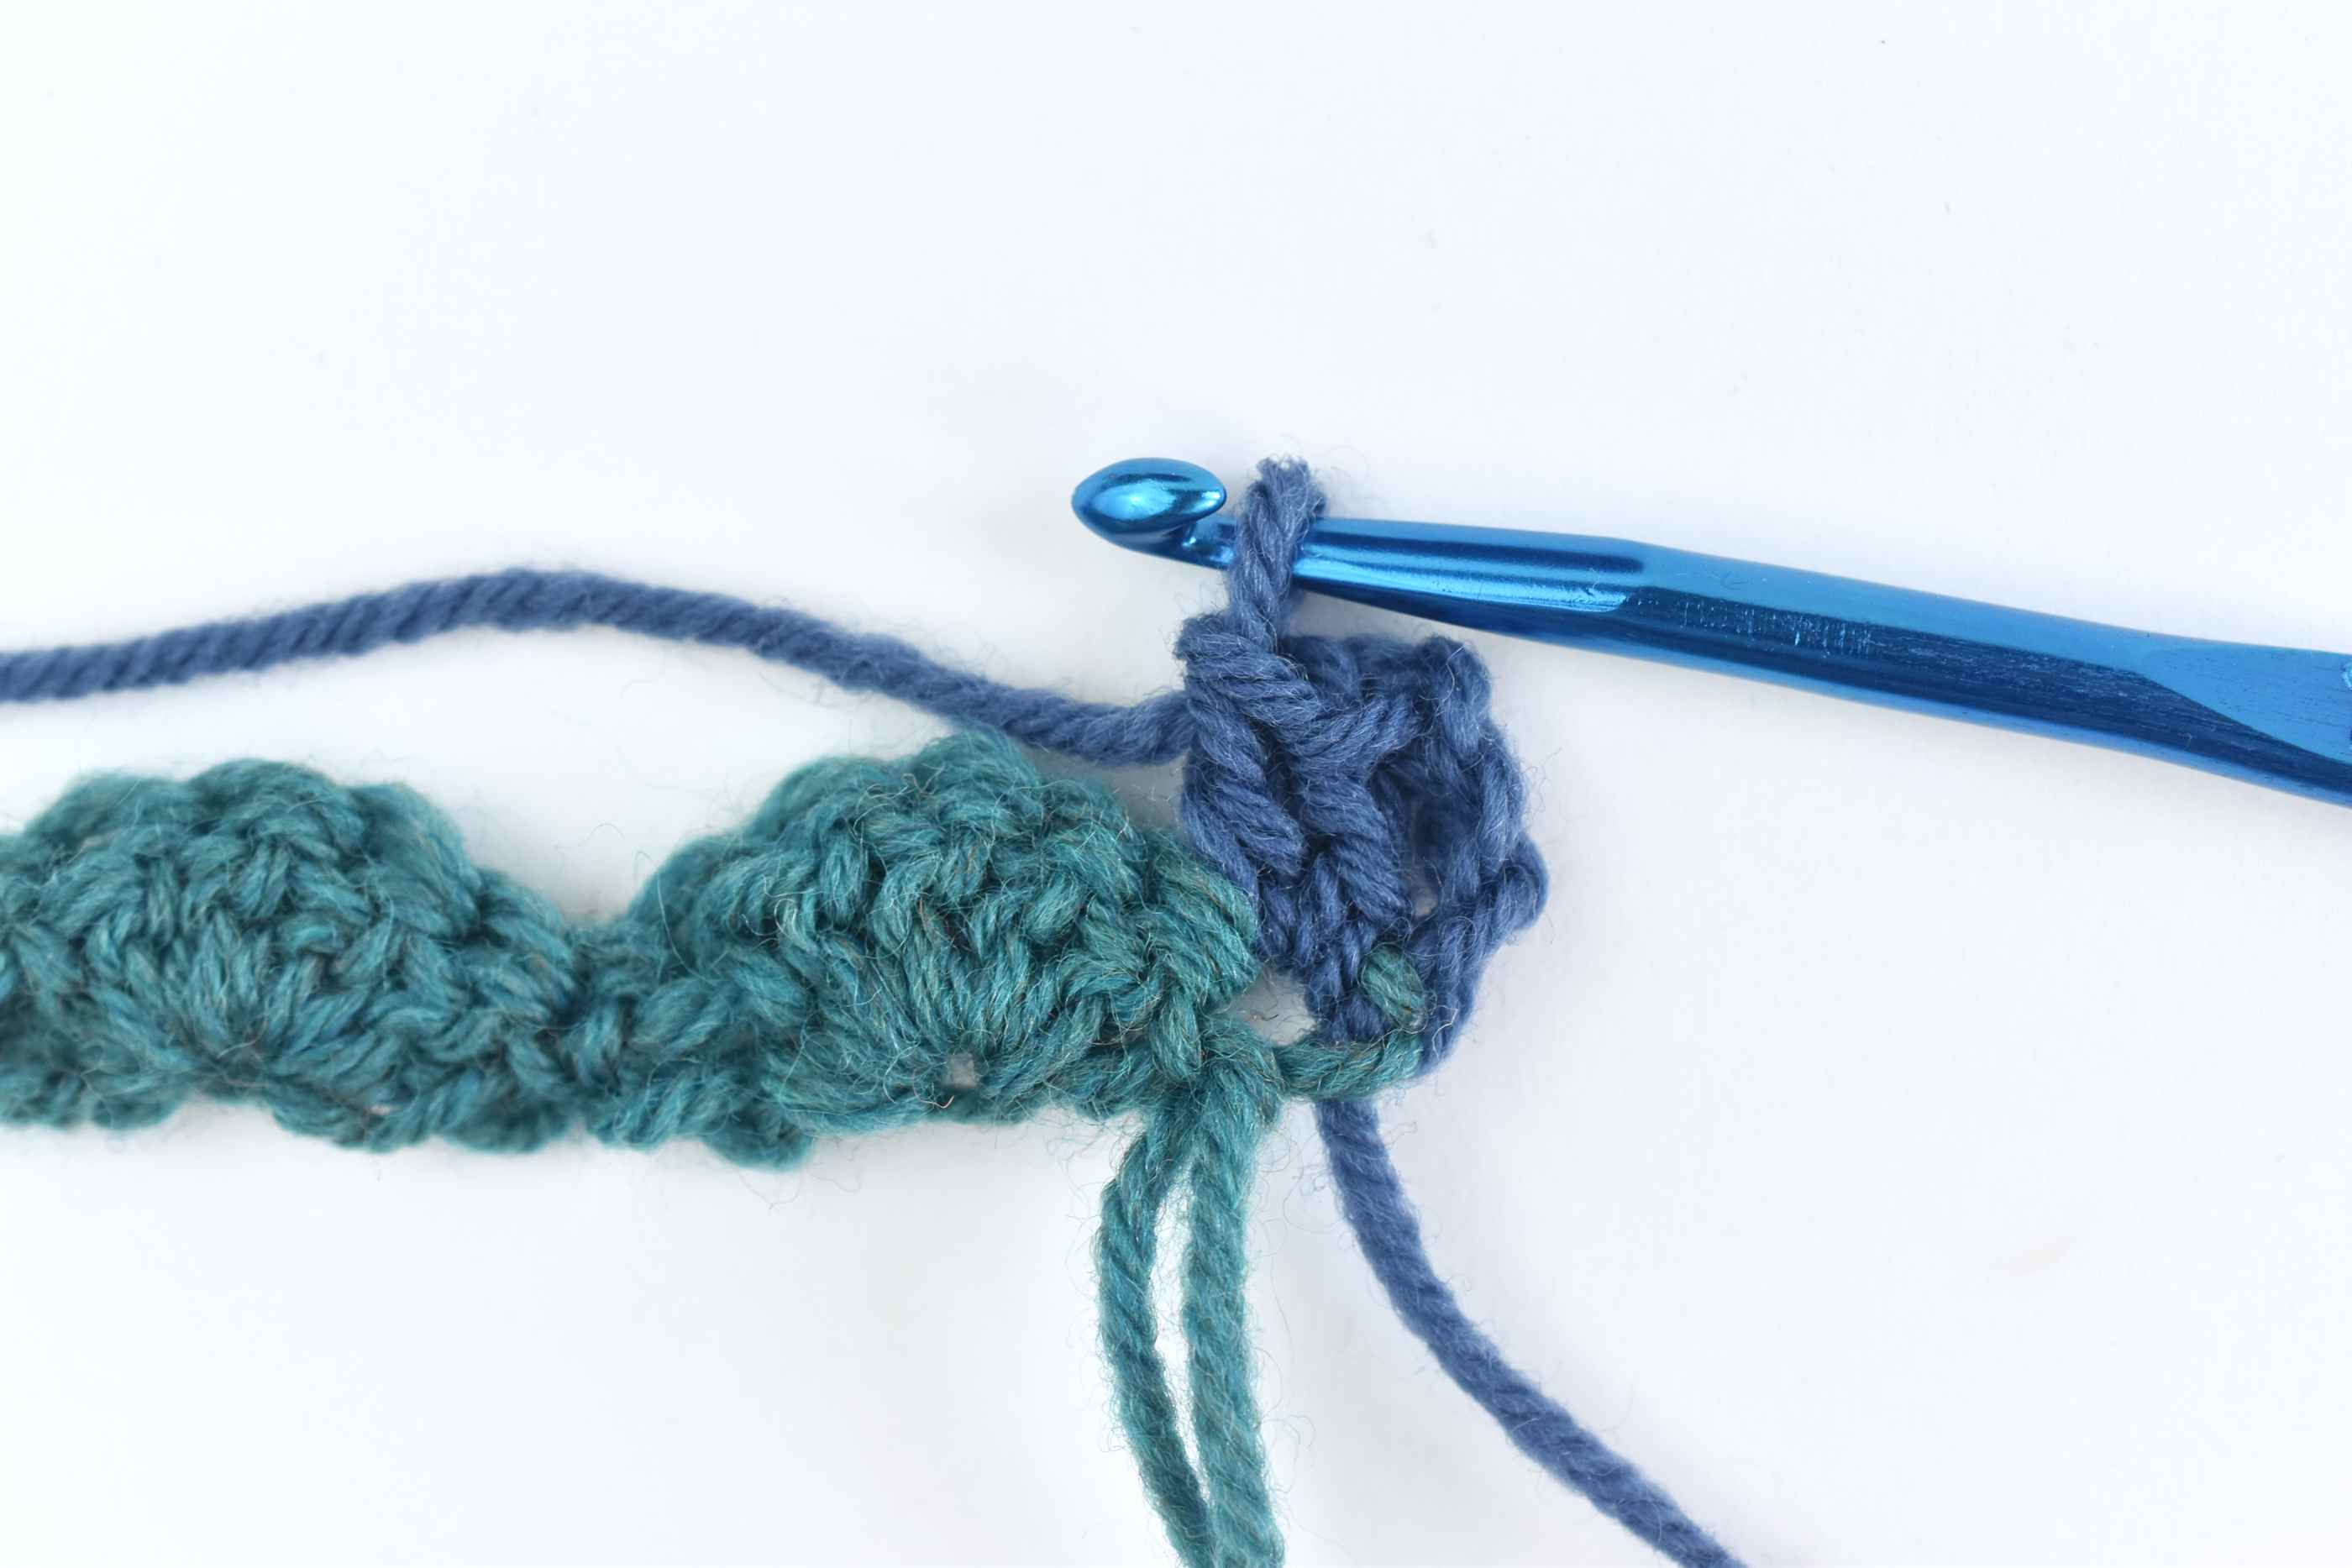 Make Two Double Crochets Into the Same Chain